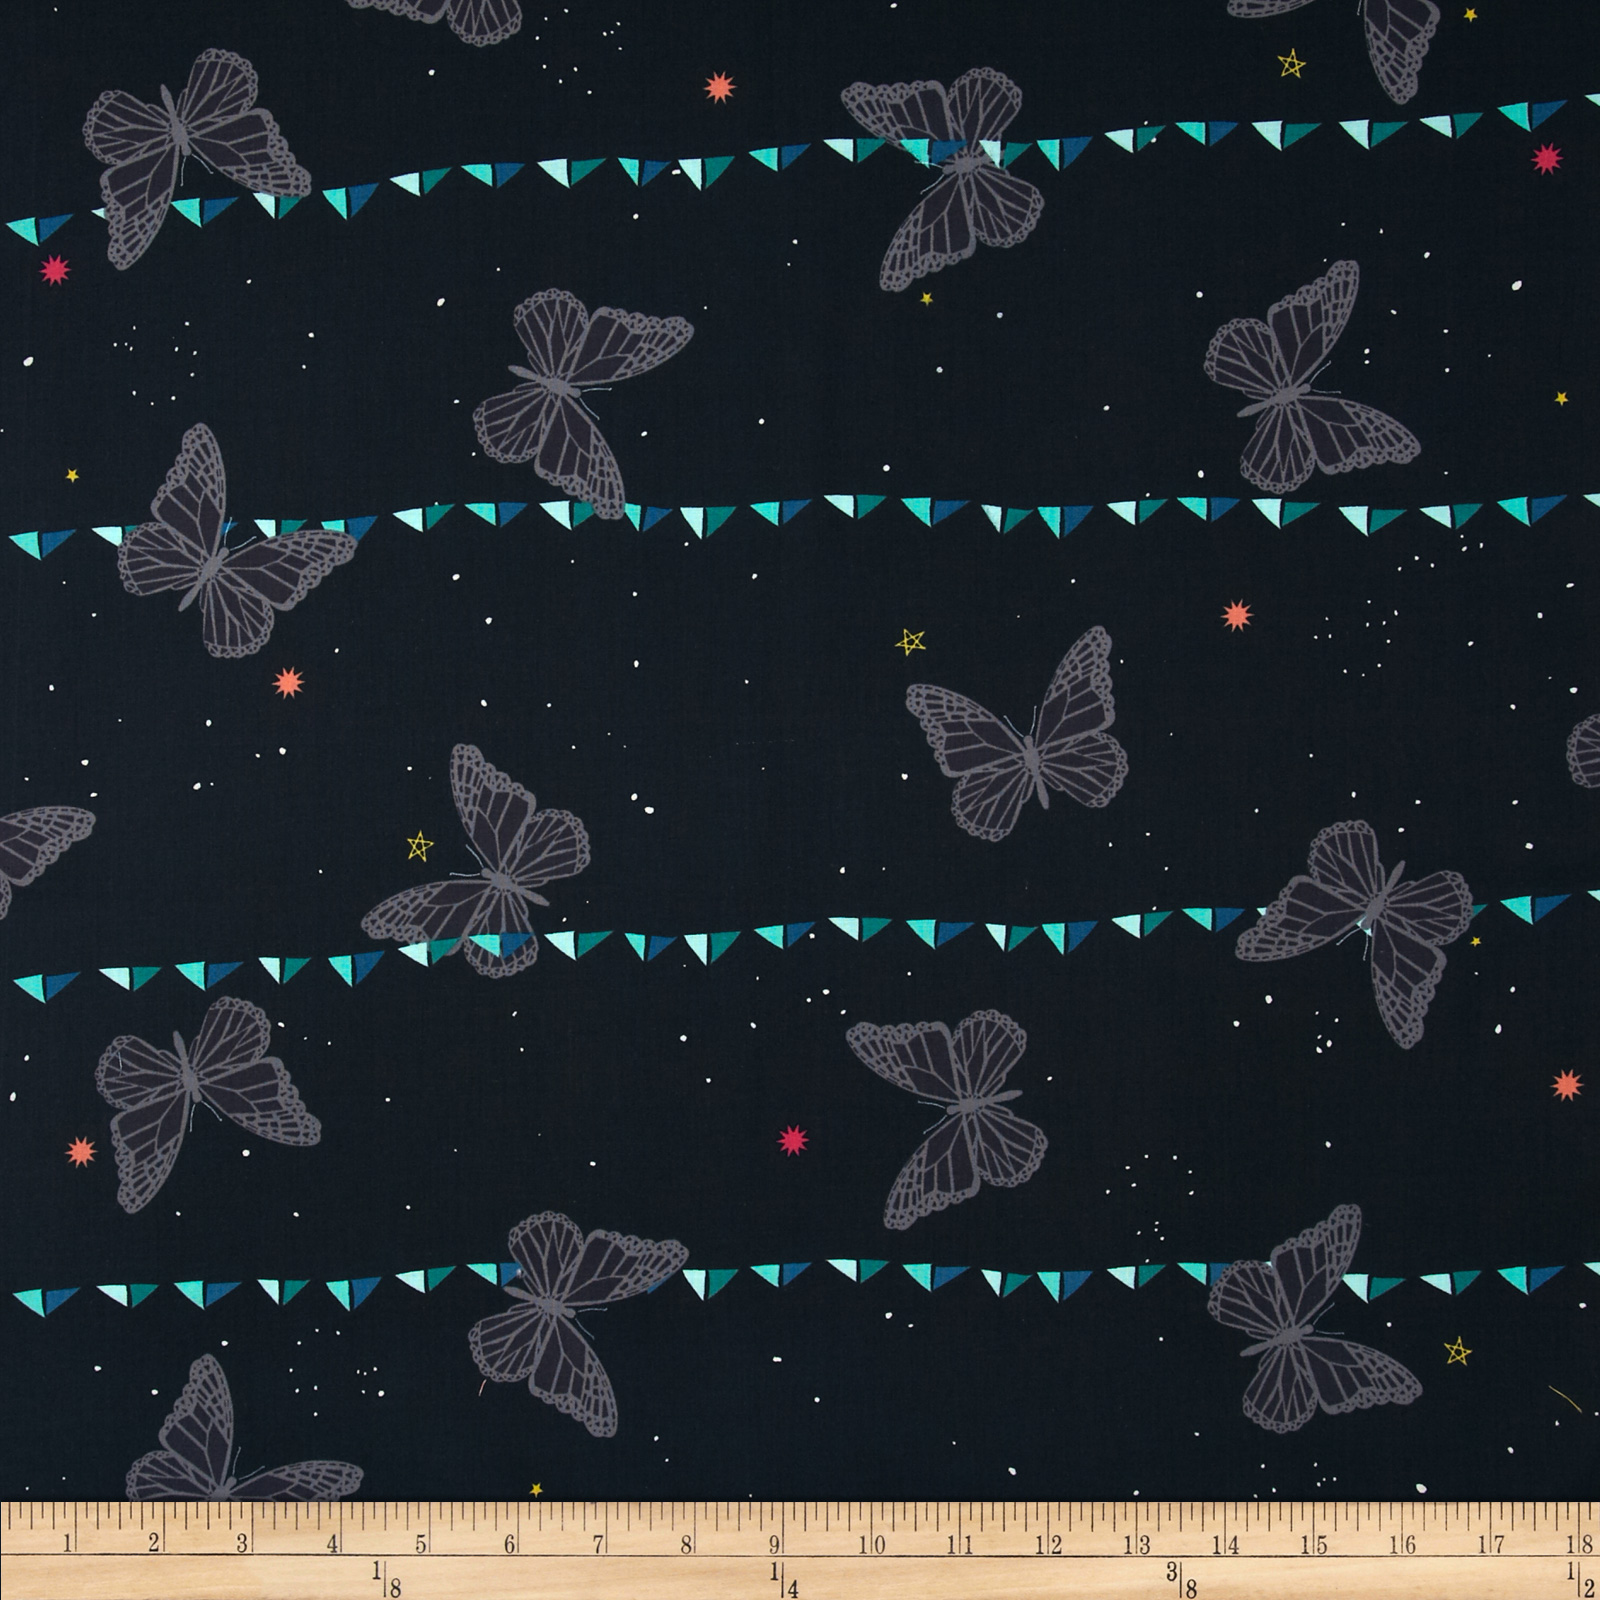 Cotton & Steel Moonlit Night Sky Butterfly Navy Fabric